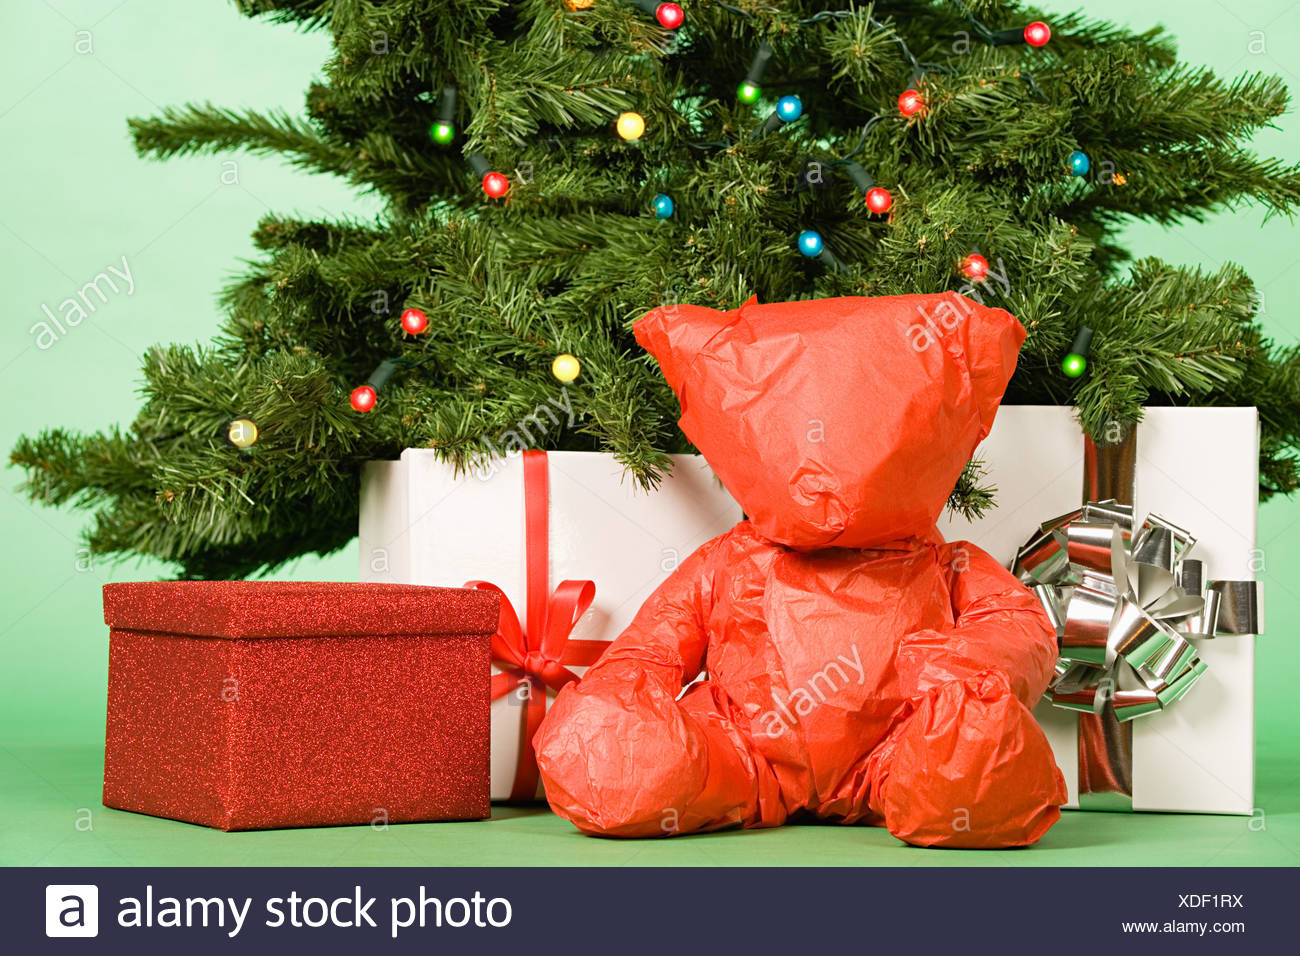 Gifts Under Tree Stock Photos & Gifts Under Tree Stock Images - Alamy